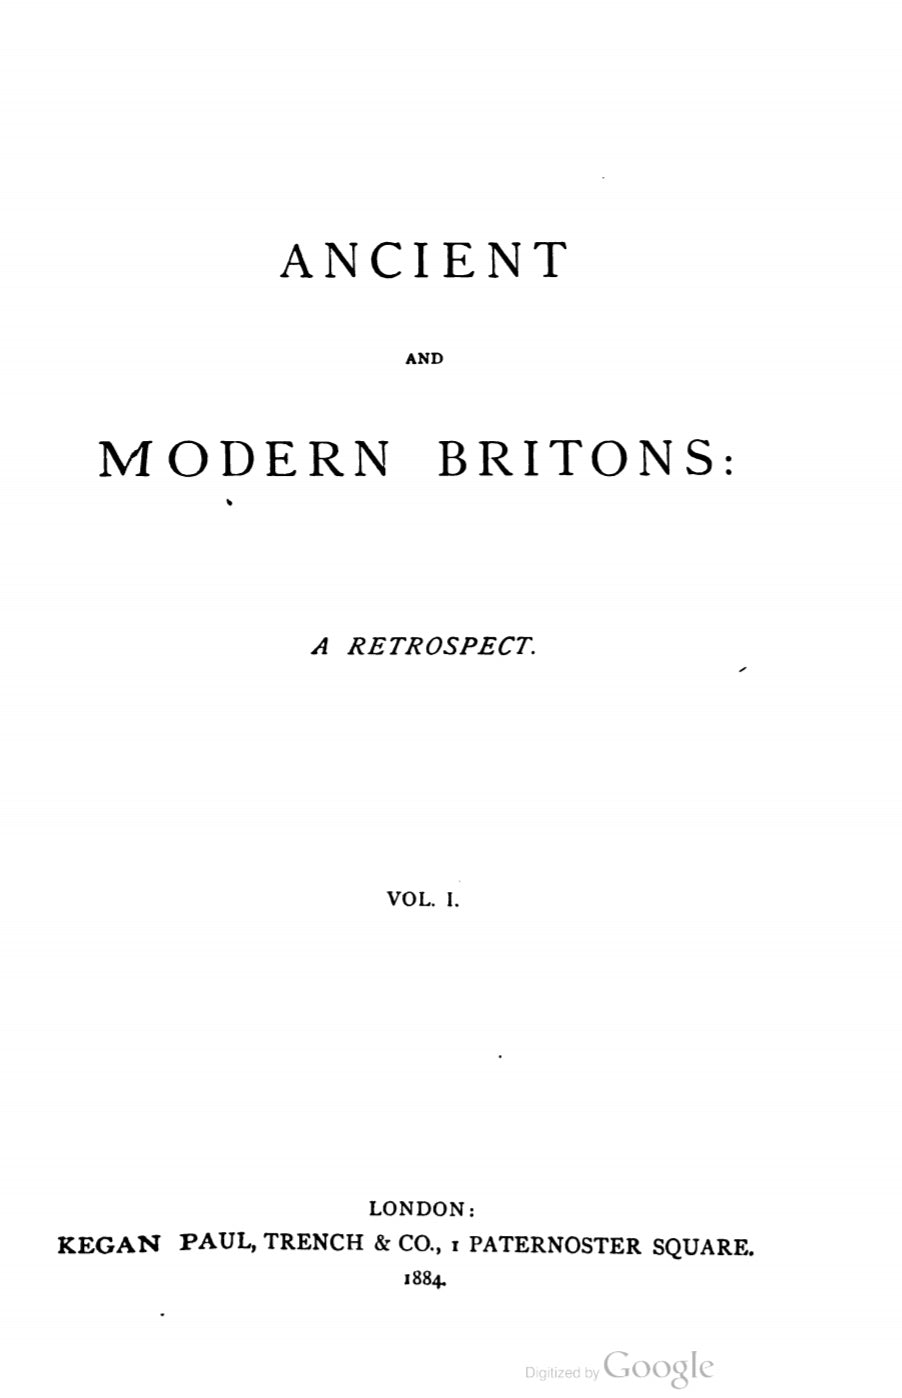 1884 Ancient and Modern Britons A Retrospect Vol.1